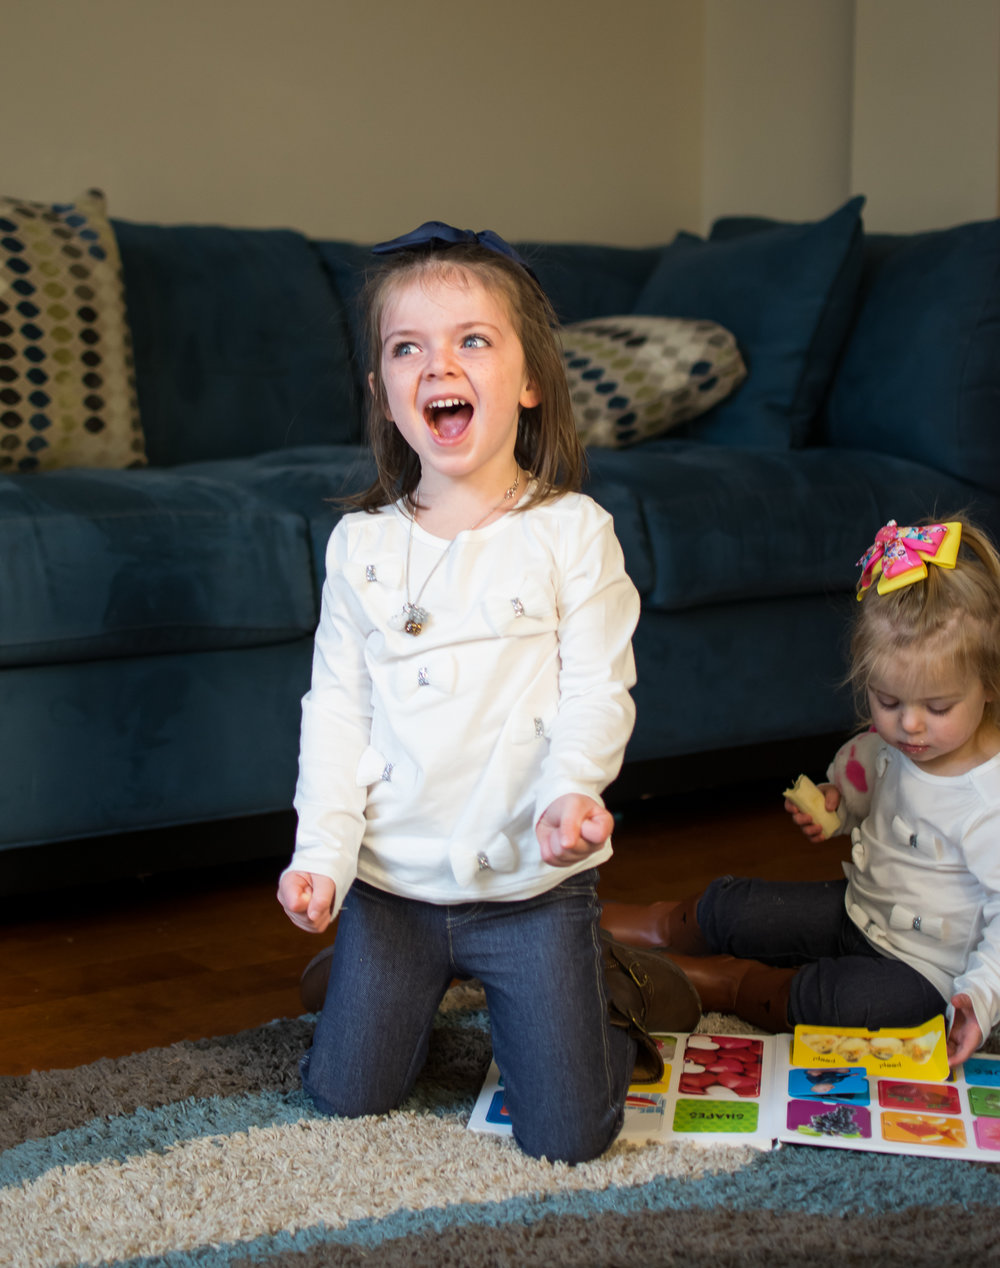 this is an image of two little girl sisters in the living room, one is looking at a book, and the other girl is laughing and looking at mom